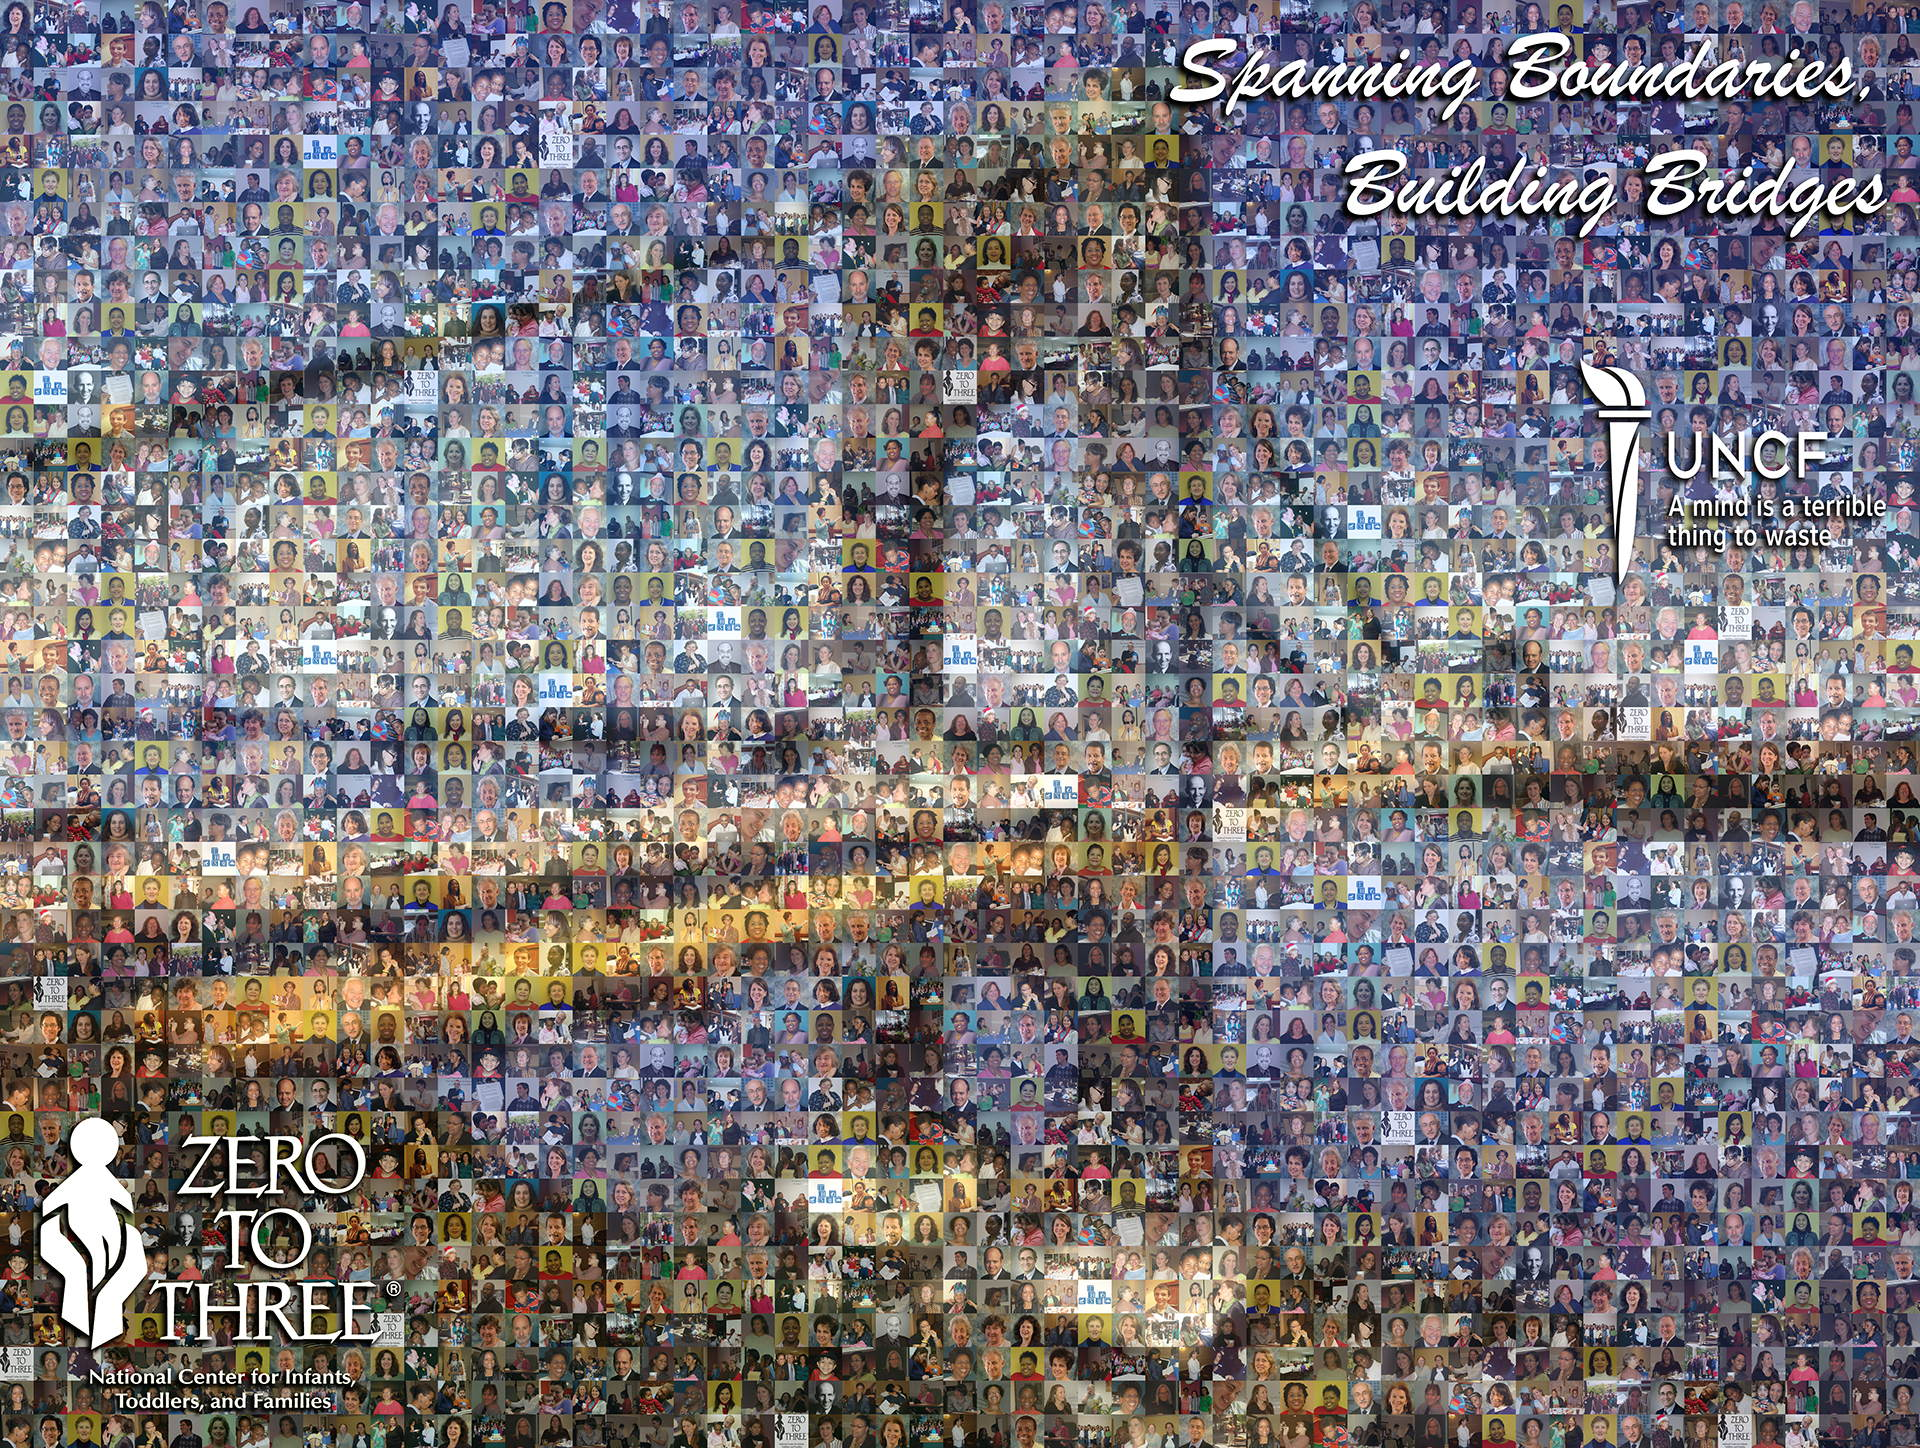 photo mosaic created using 190 employee photos